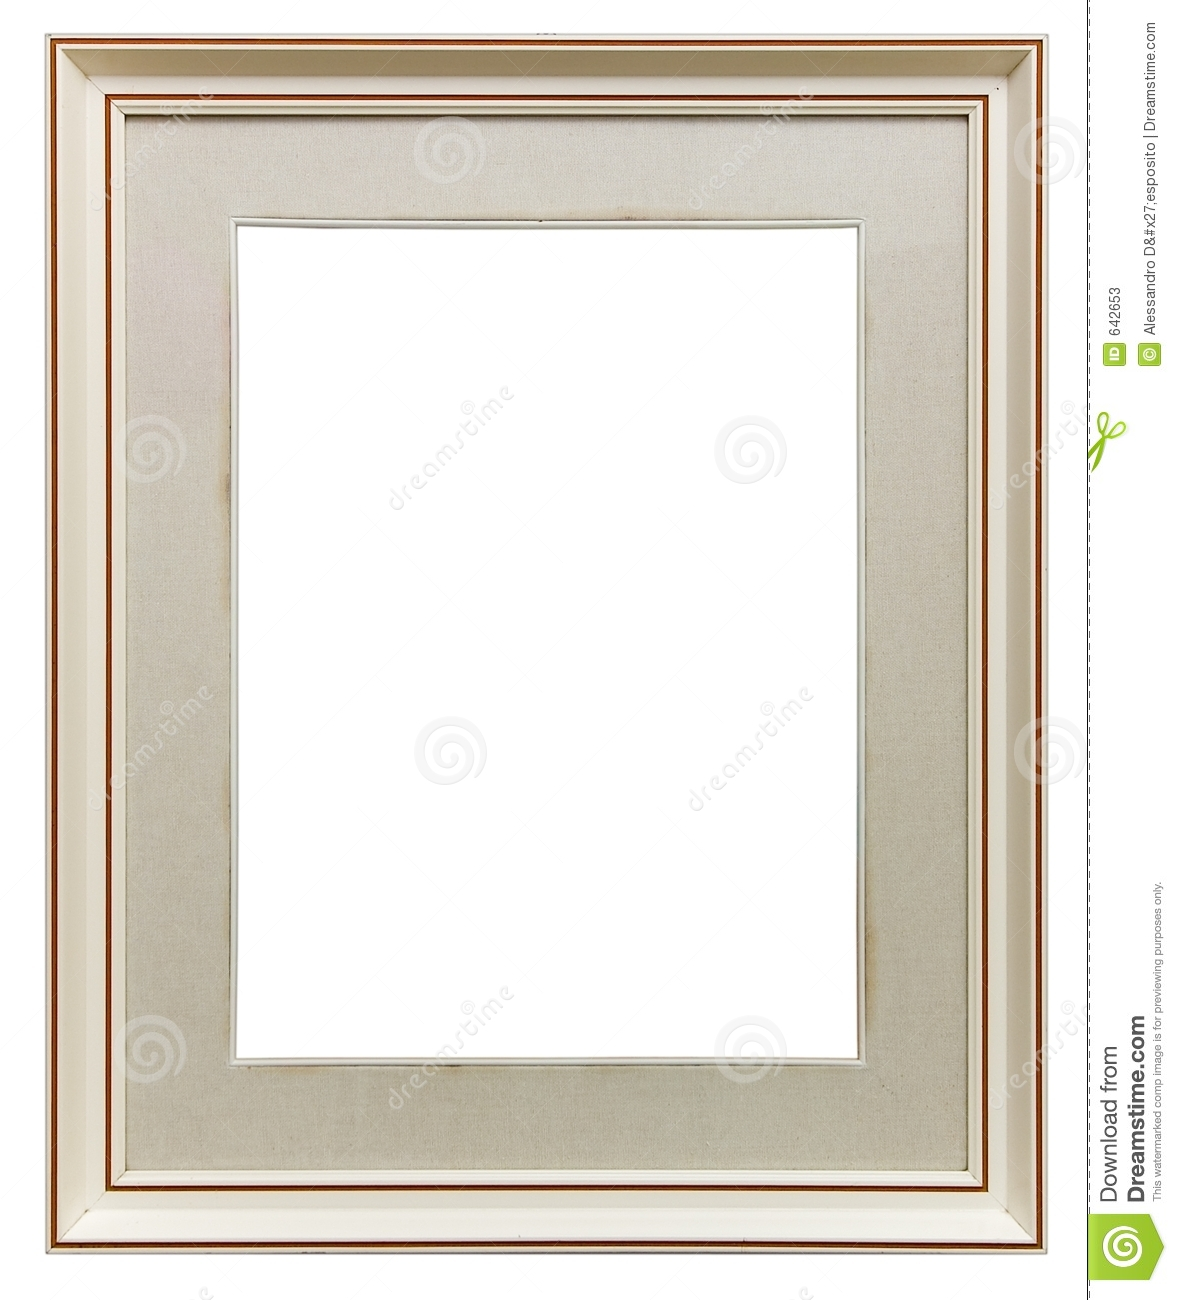 White wooden frame stock photos image 642653 - White wooden picture frames ...